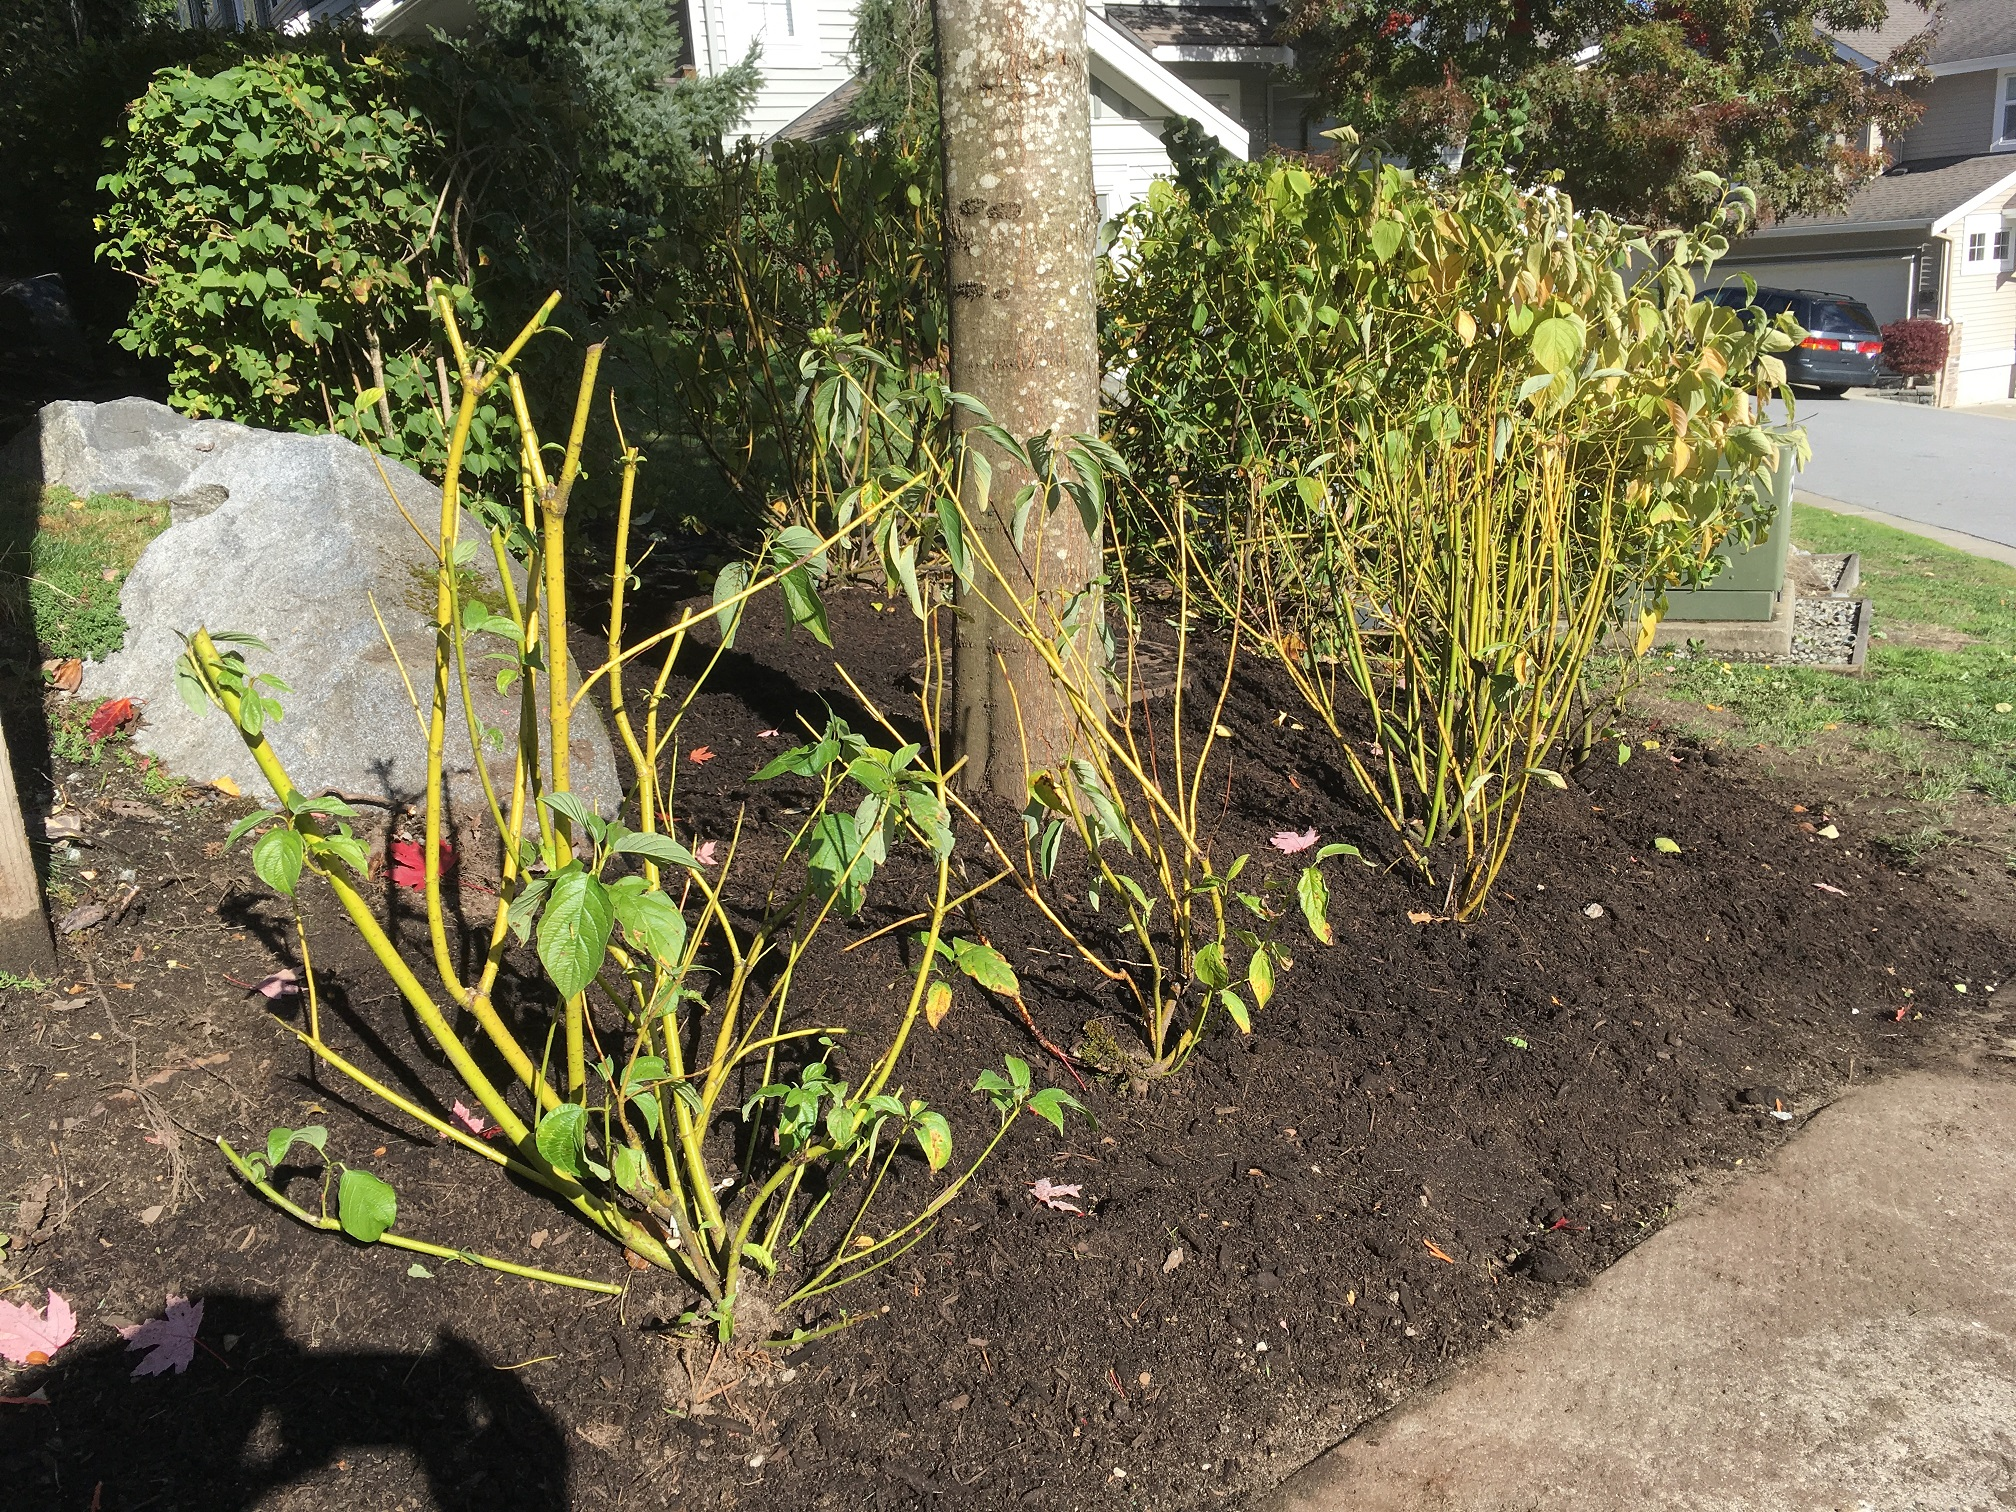 Mulch Archives - Proper Landscaping Inc.